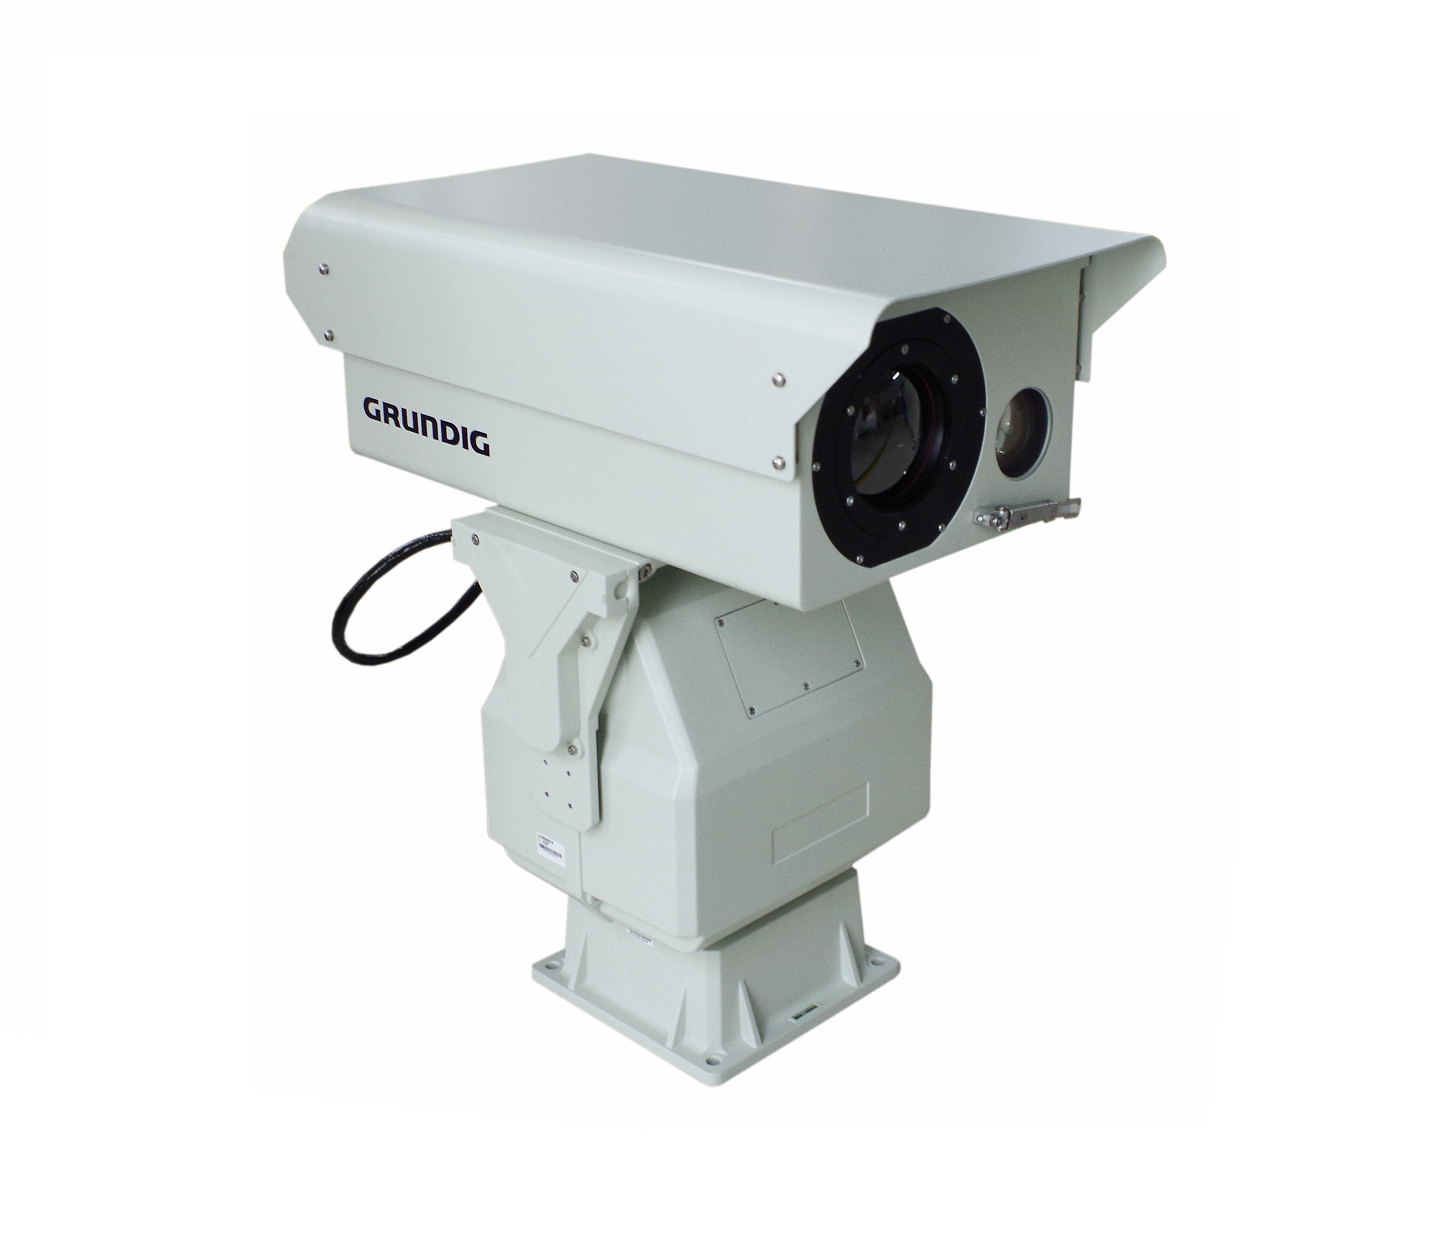 Positioning System with Thermal Camera